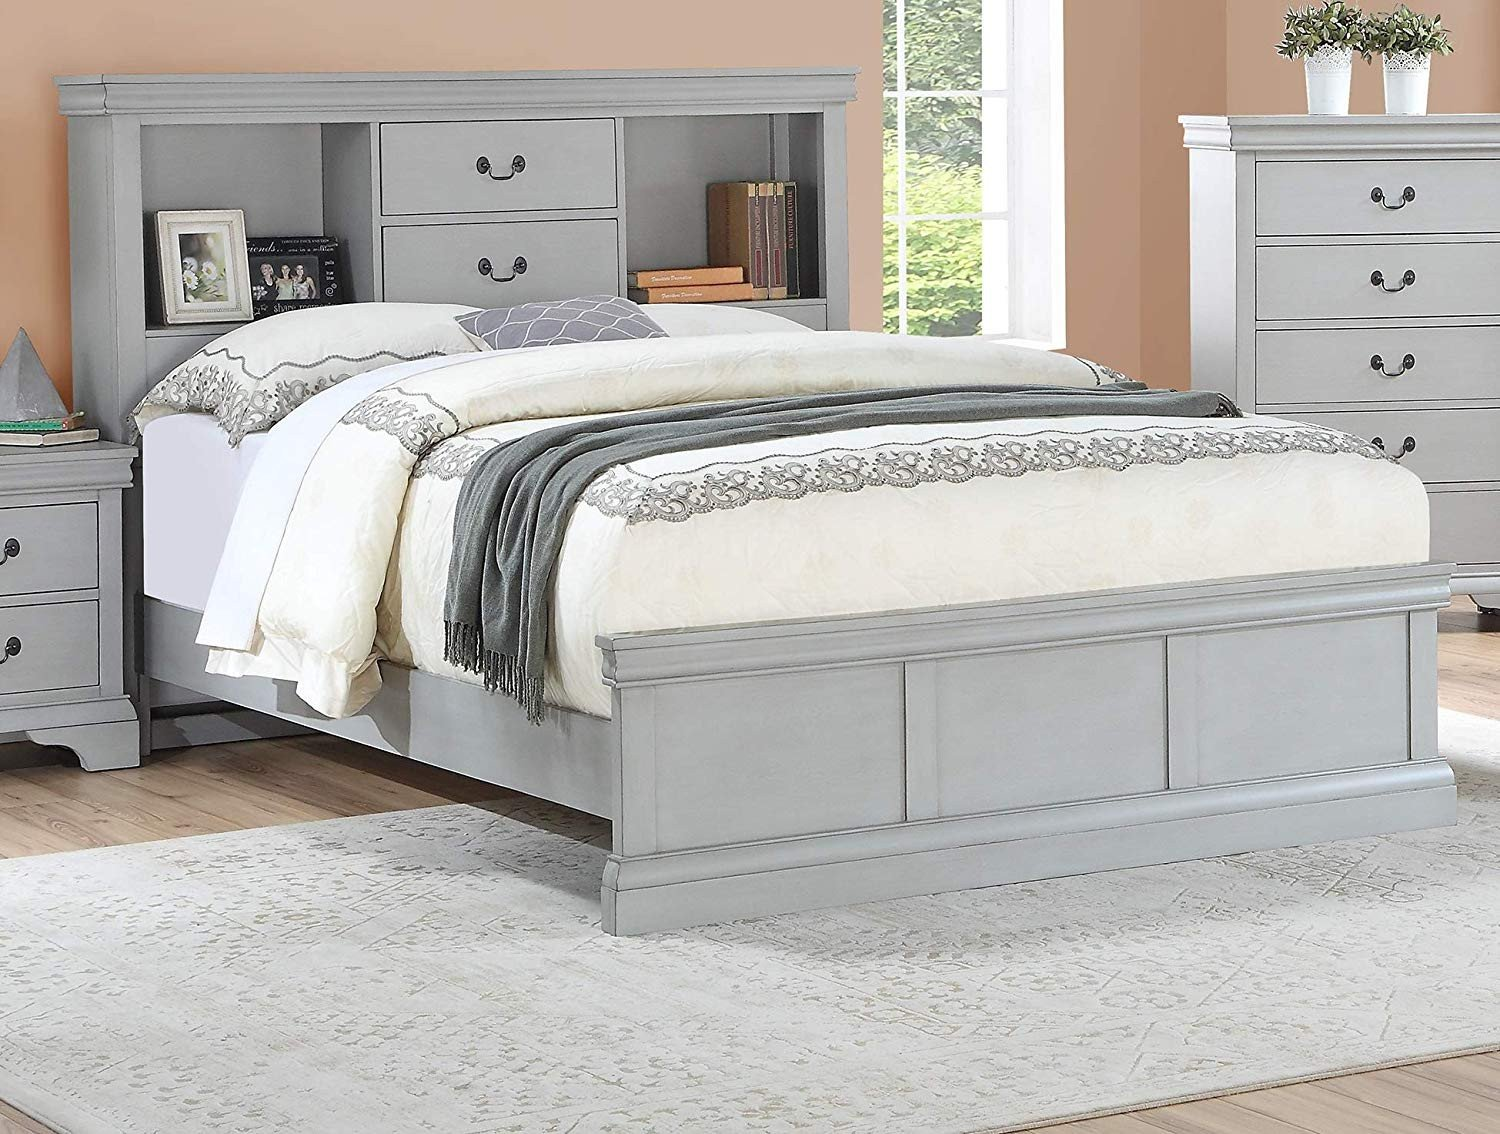 King Size Bedroom Set with Mattress Luxury Amazon Esofastore Classic Modern Bedroom Furniture